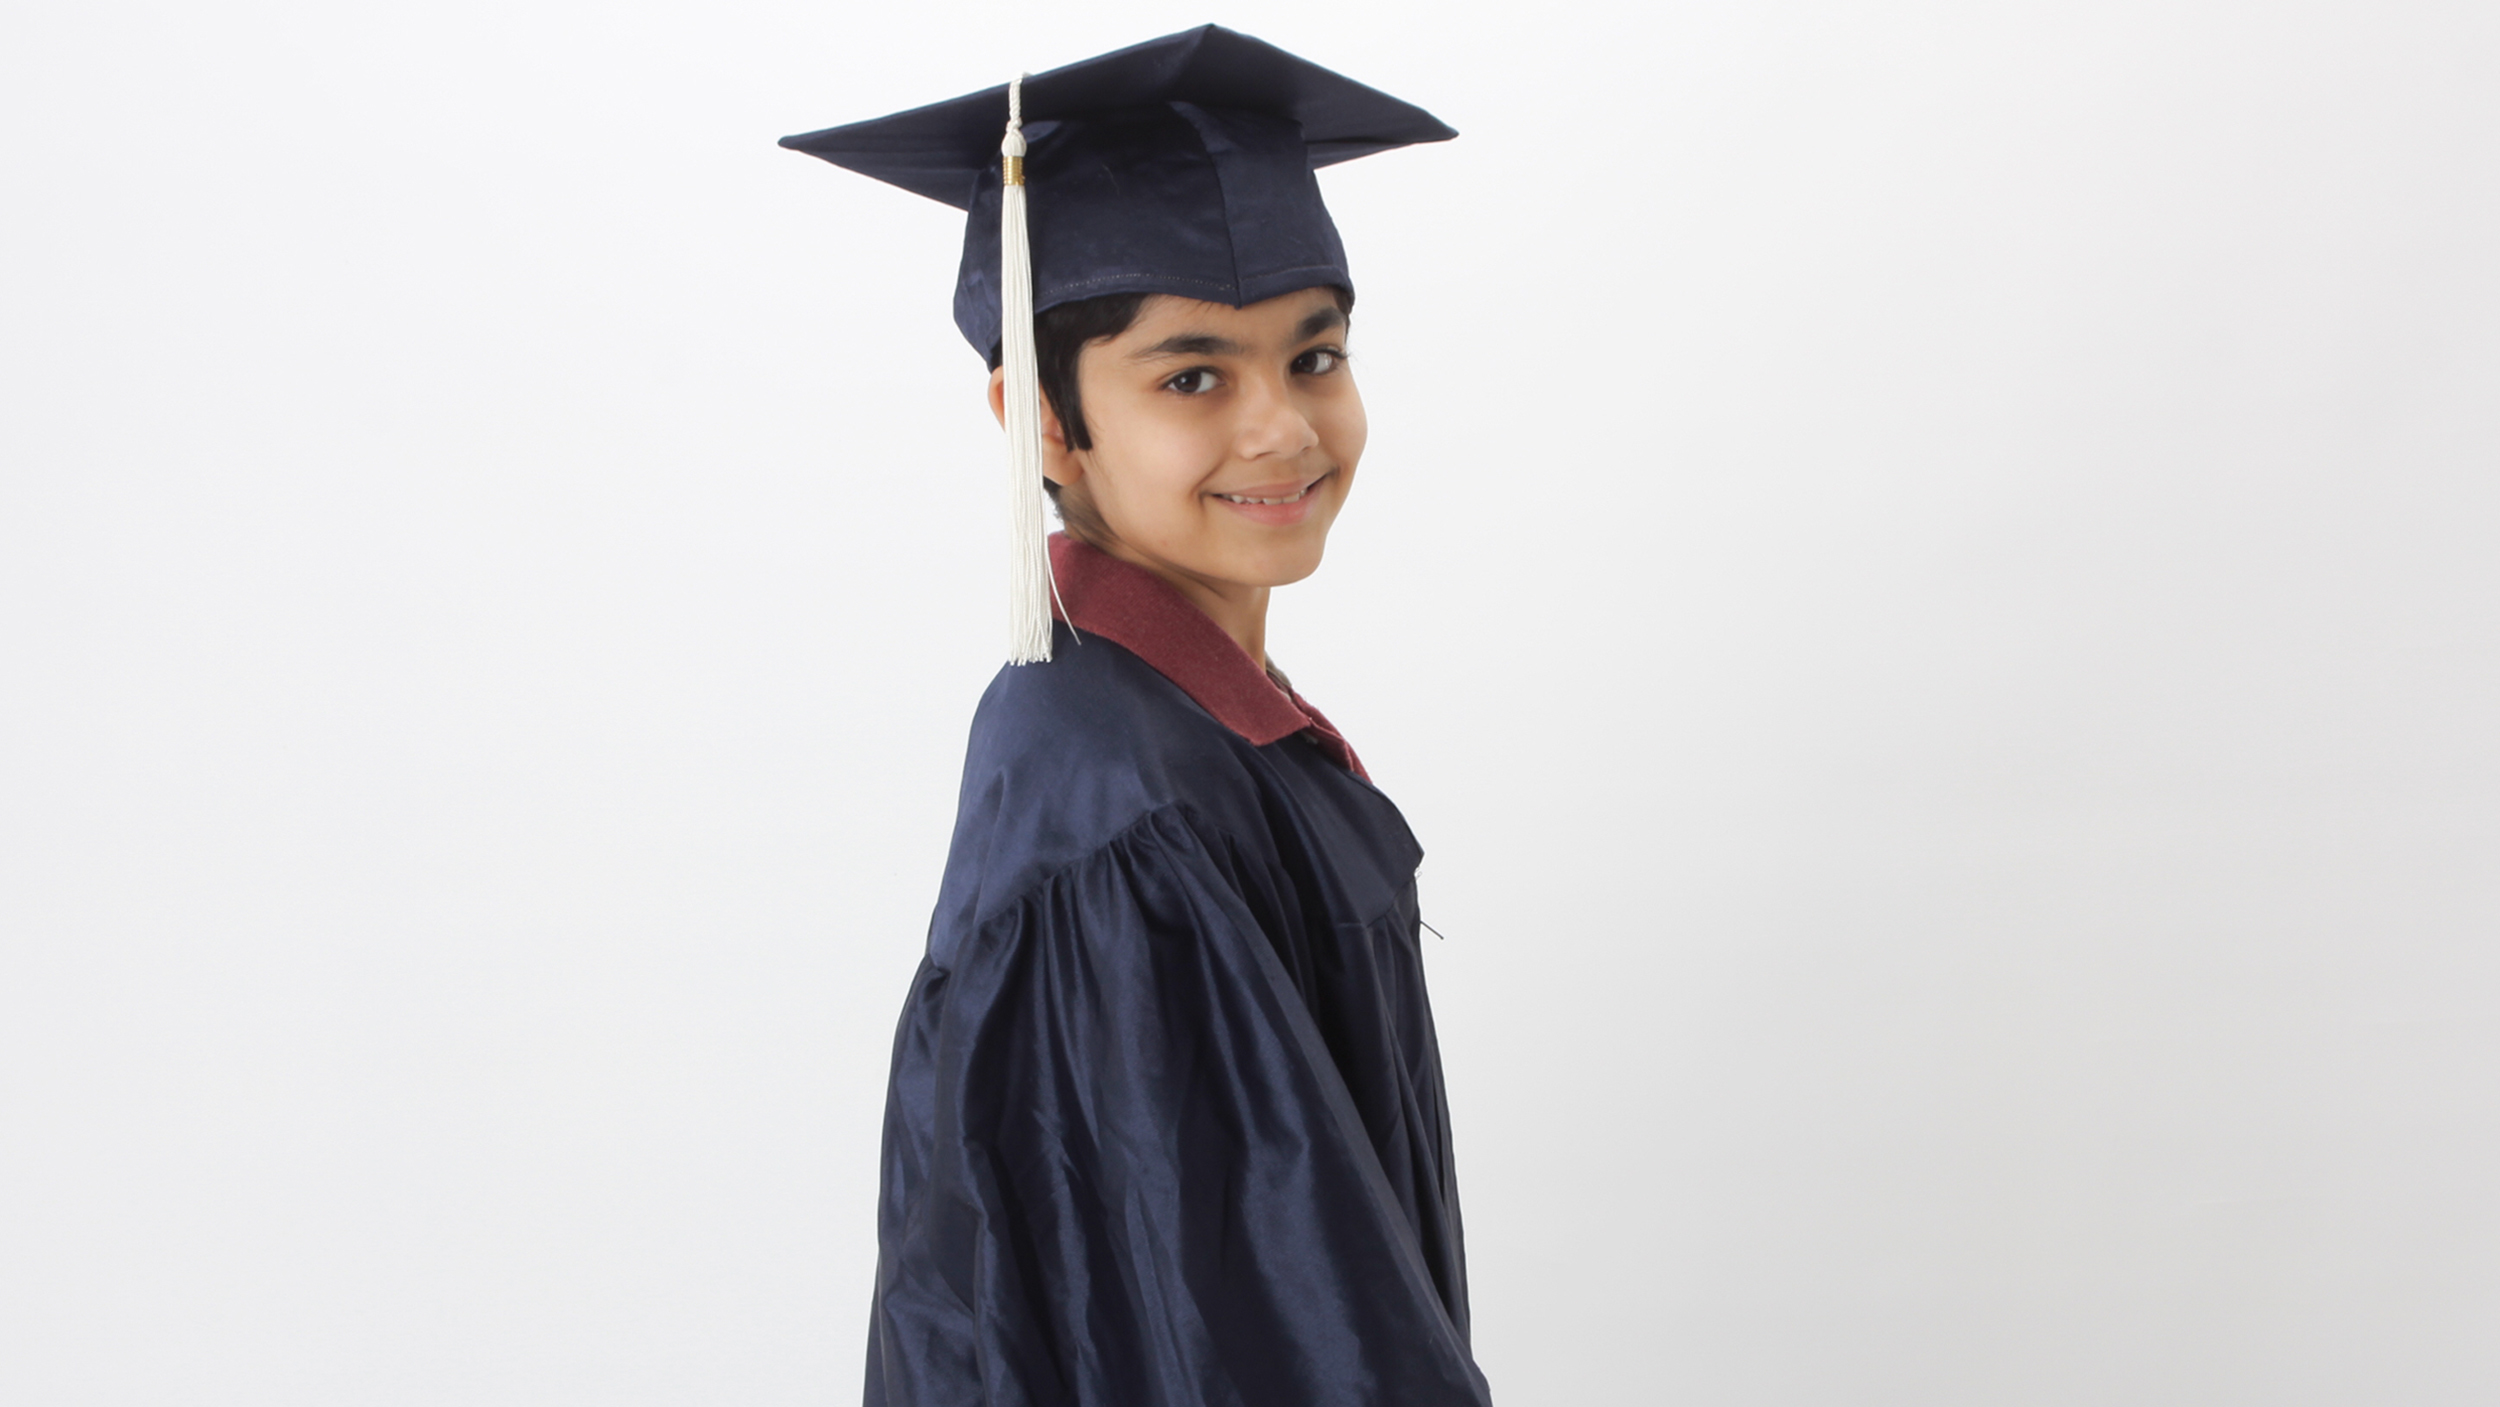 Meet the 10-year-old prodigy who just graduated from high school